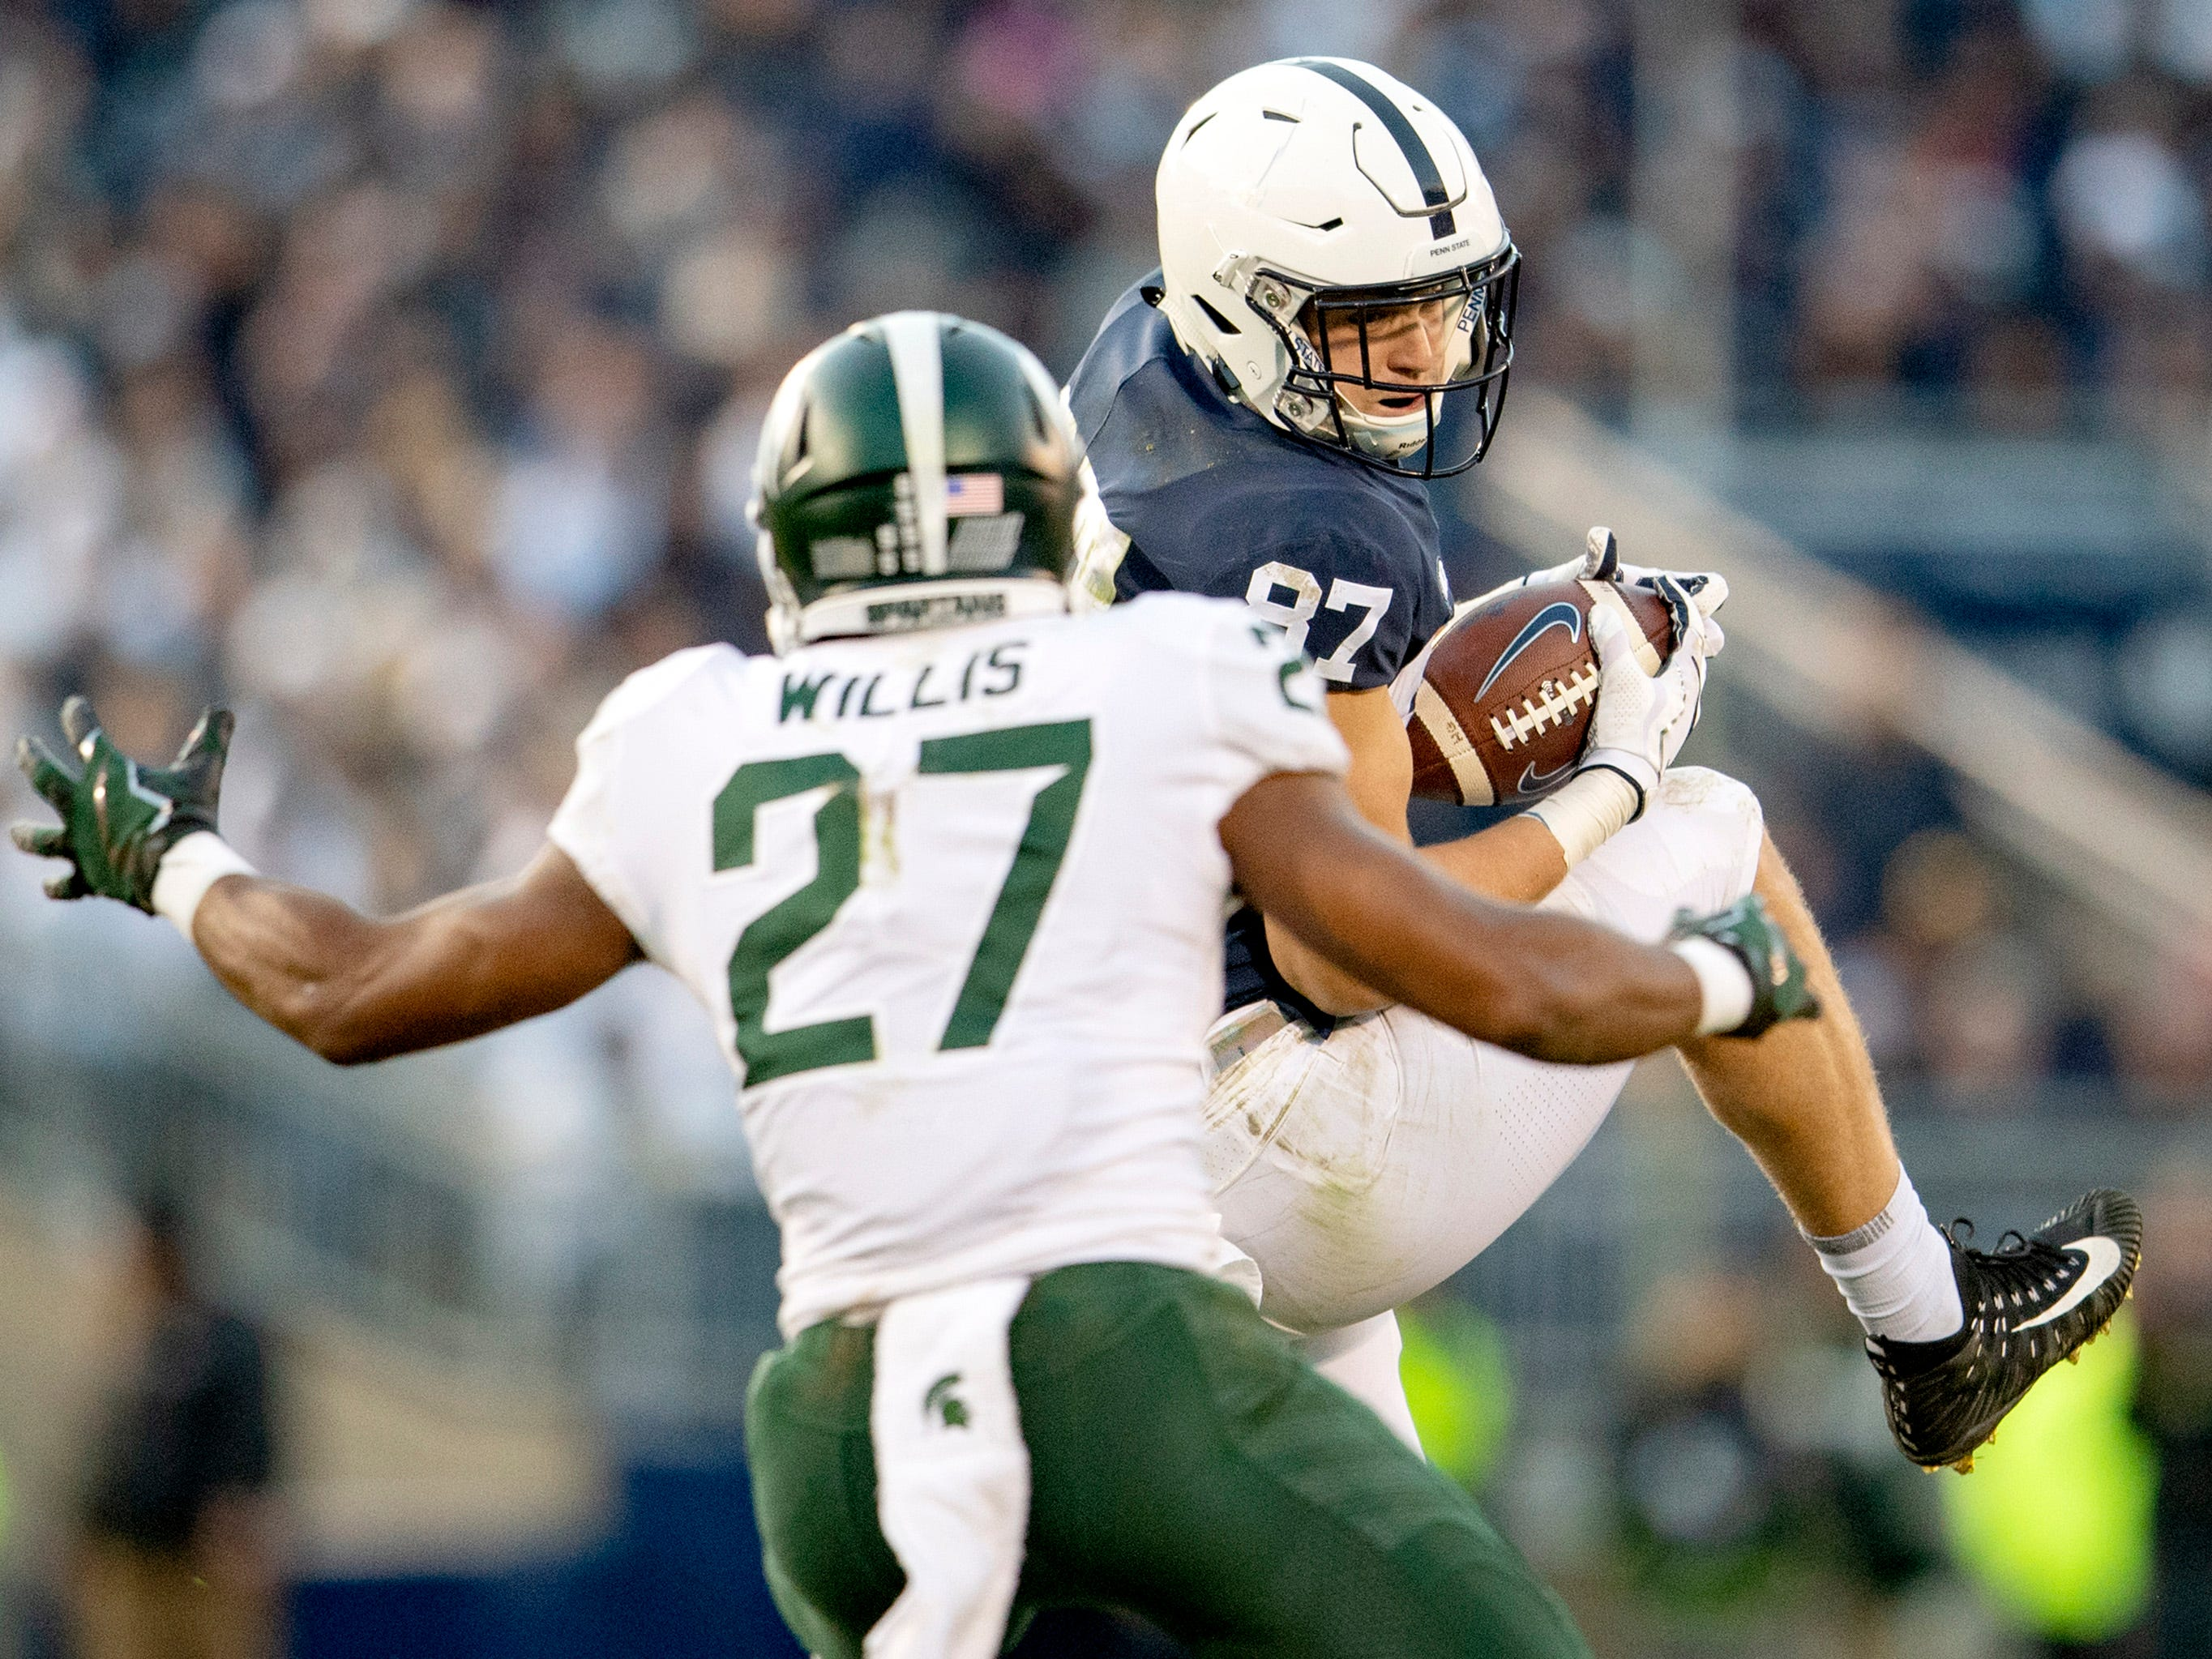 Penn State tight end Pat Freiermuth (87) makes a catch against Michigan State safety Khari Willis (27) at Beaver Stadium in University Park, Pa., on Saturday, Oct. 13, 2018. The visiting Spartans won, 21-17. (Abby Drey/Centre Daily Times/TNS)